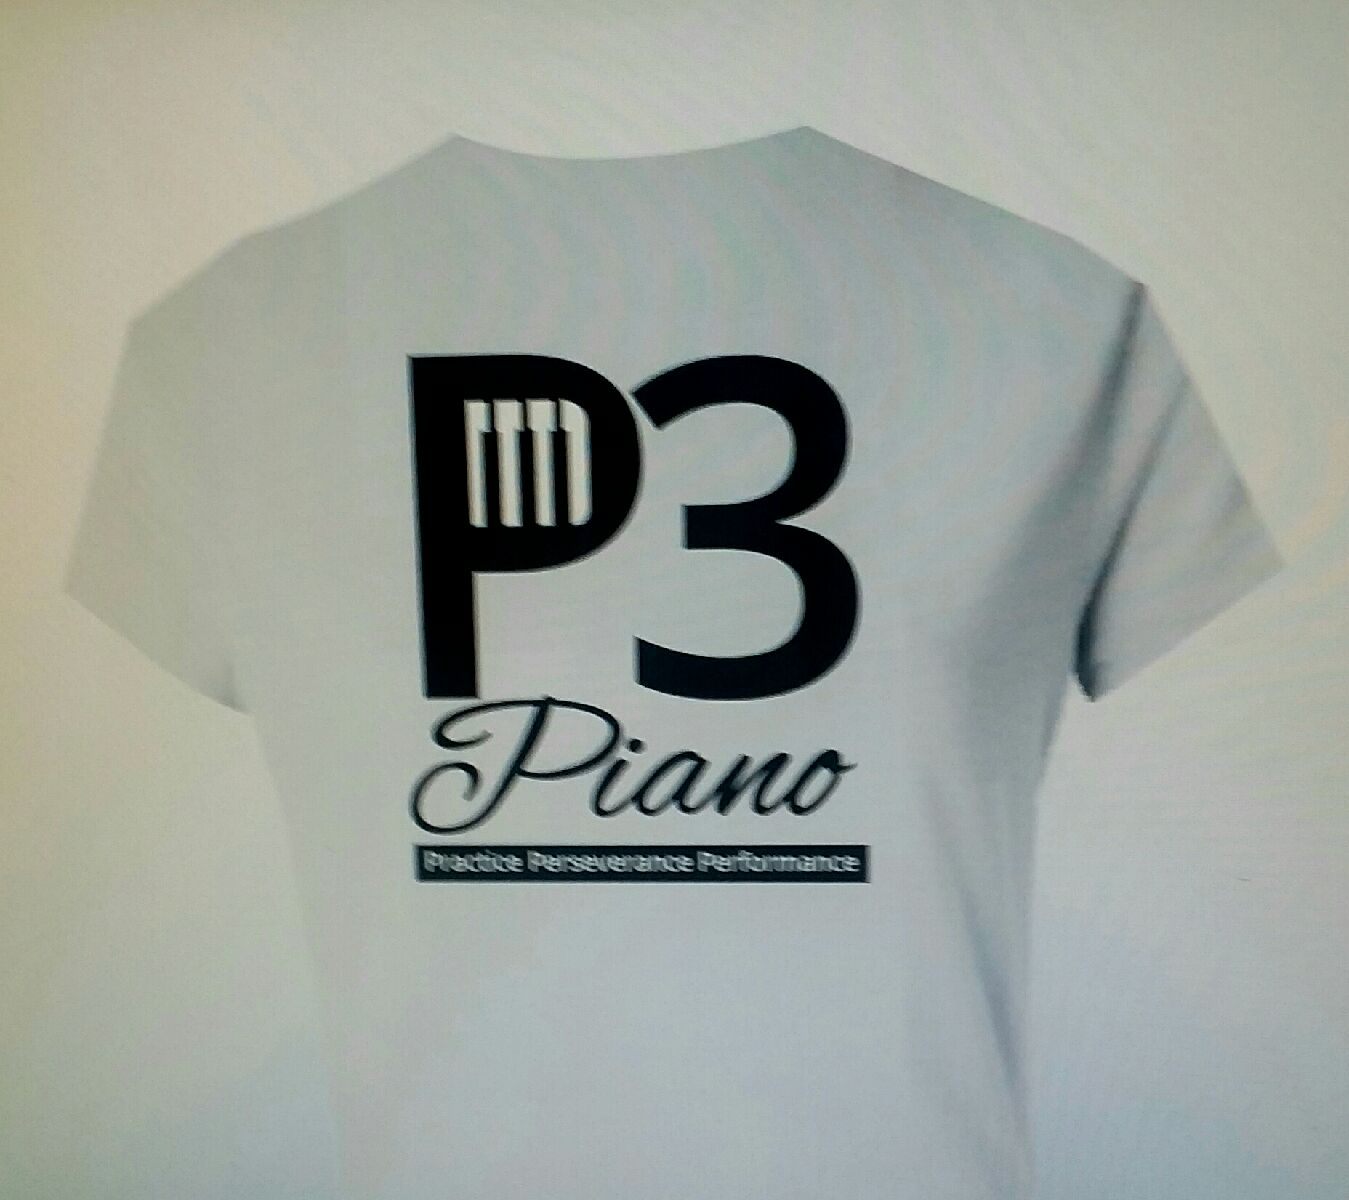 P3 Piano Child / Girls Double Sided Light GreyT Shirt